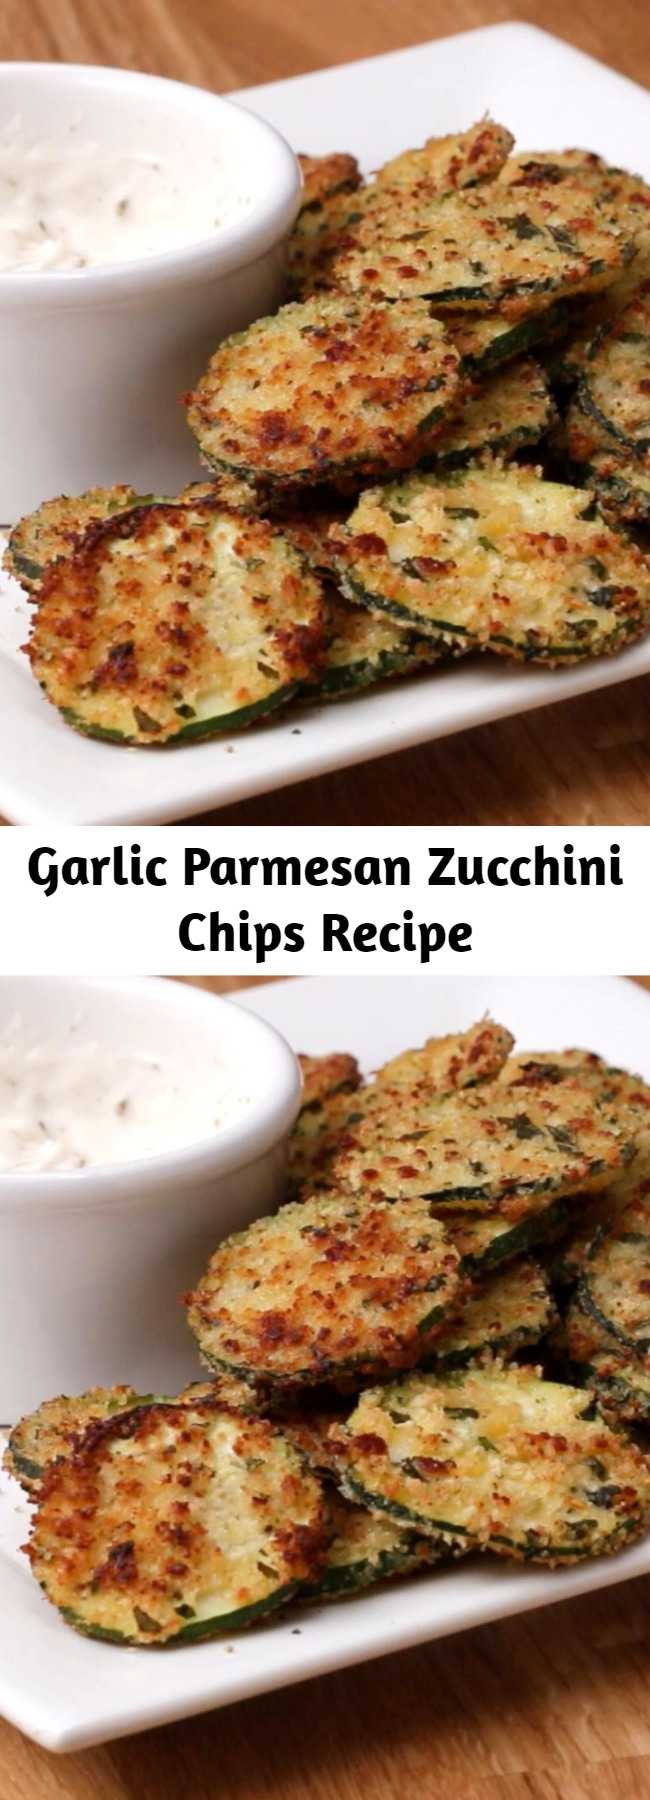 Garlic Parmesan Zucchini Chips Recipe